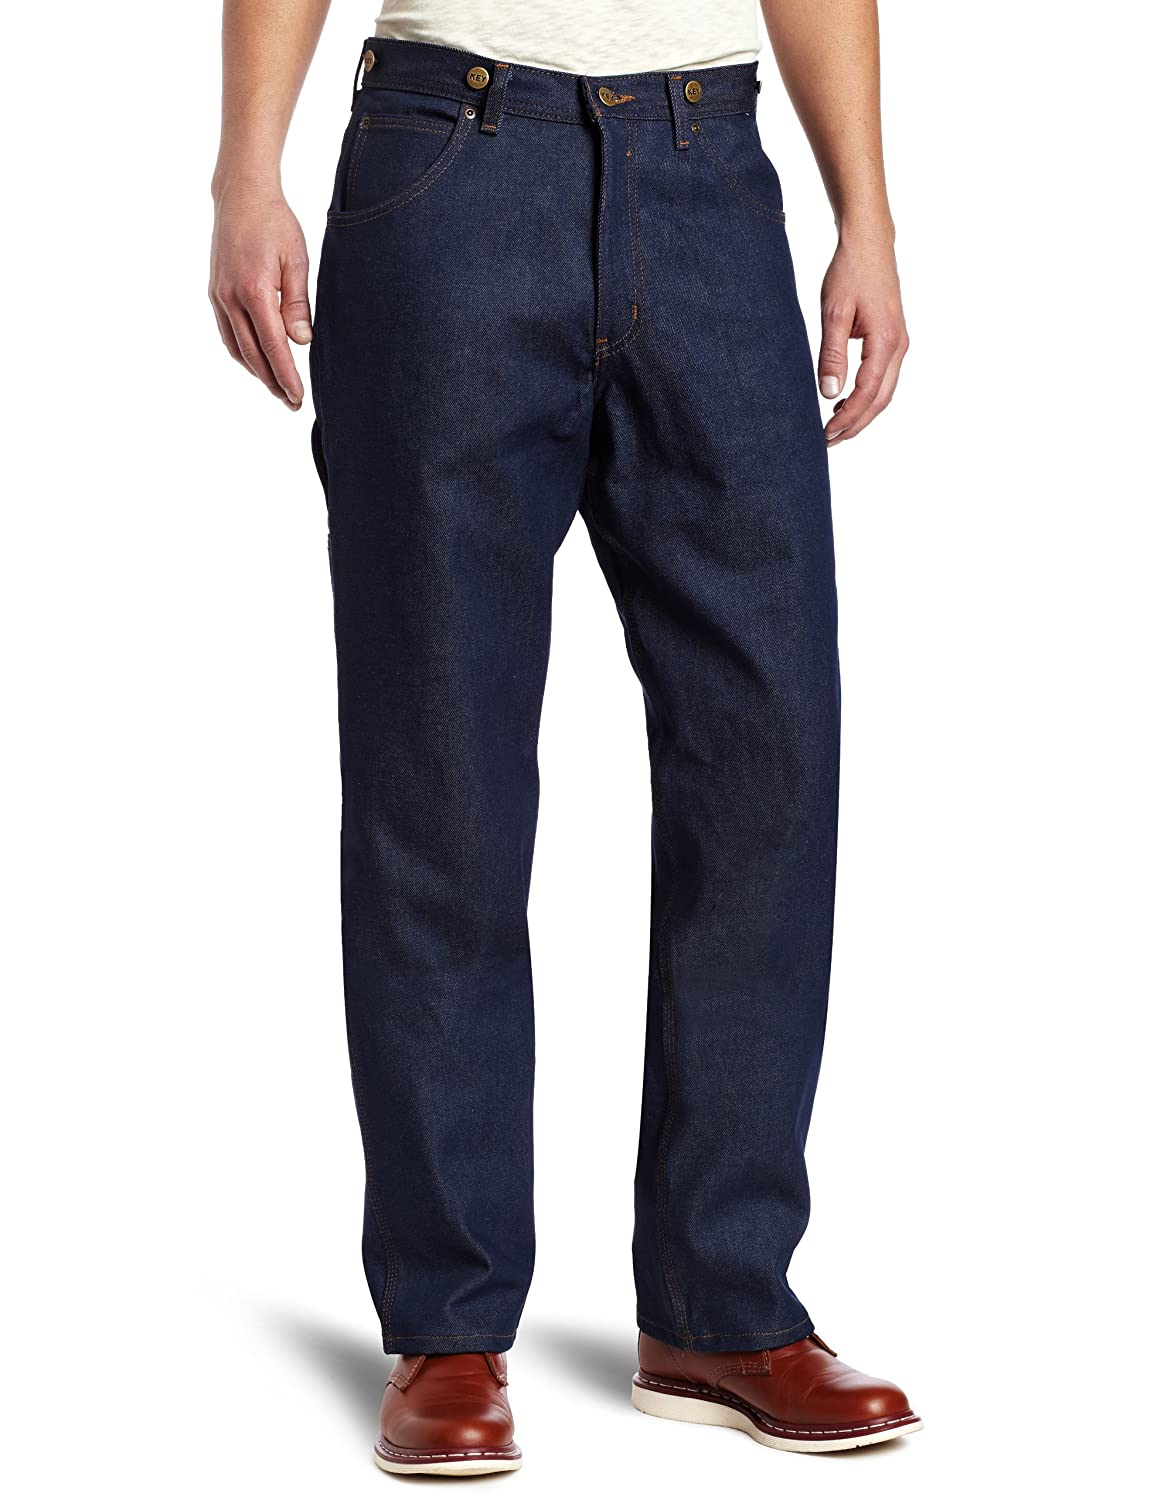 1920s Men's Pants, Trousers, Plus Fours, Knickers Key Apparel Mens Indigo Denim Logger Dungaree $26.99 AT vintagedancer.com